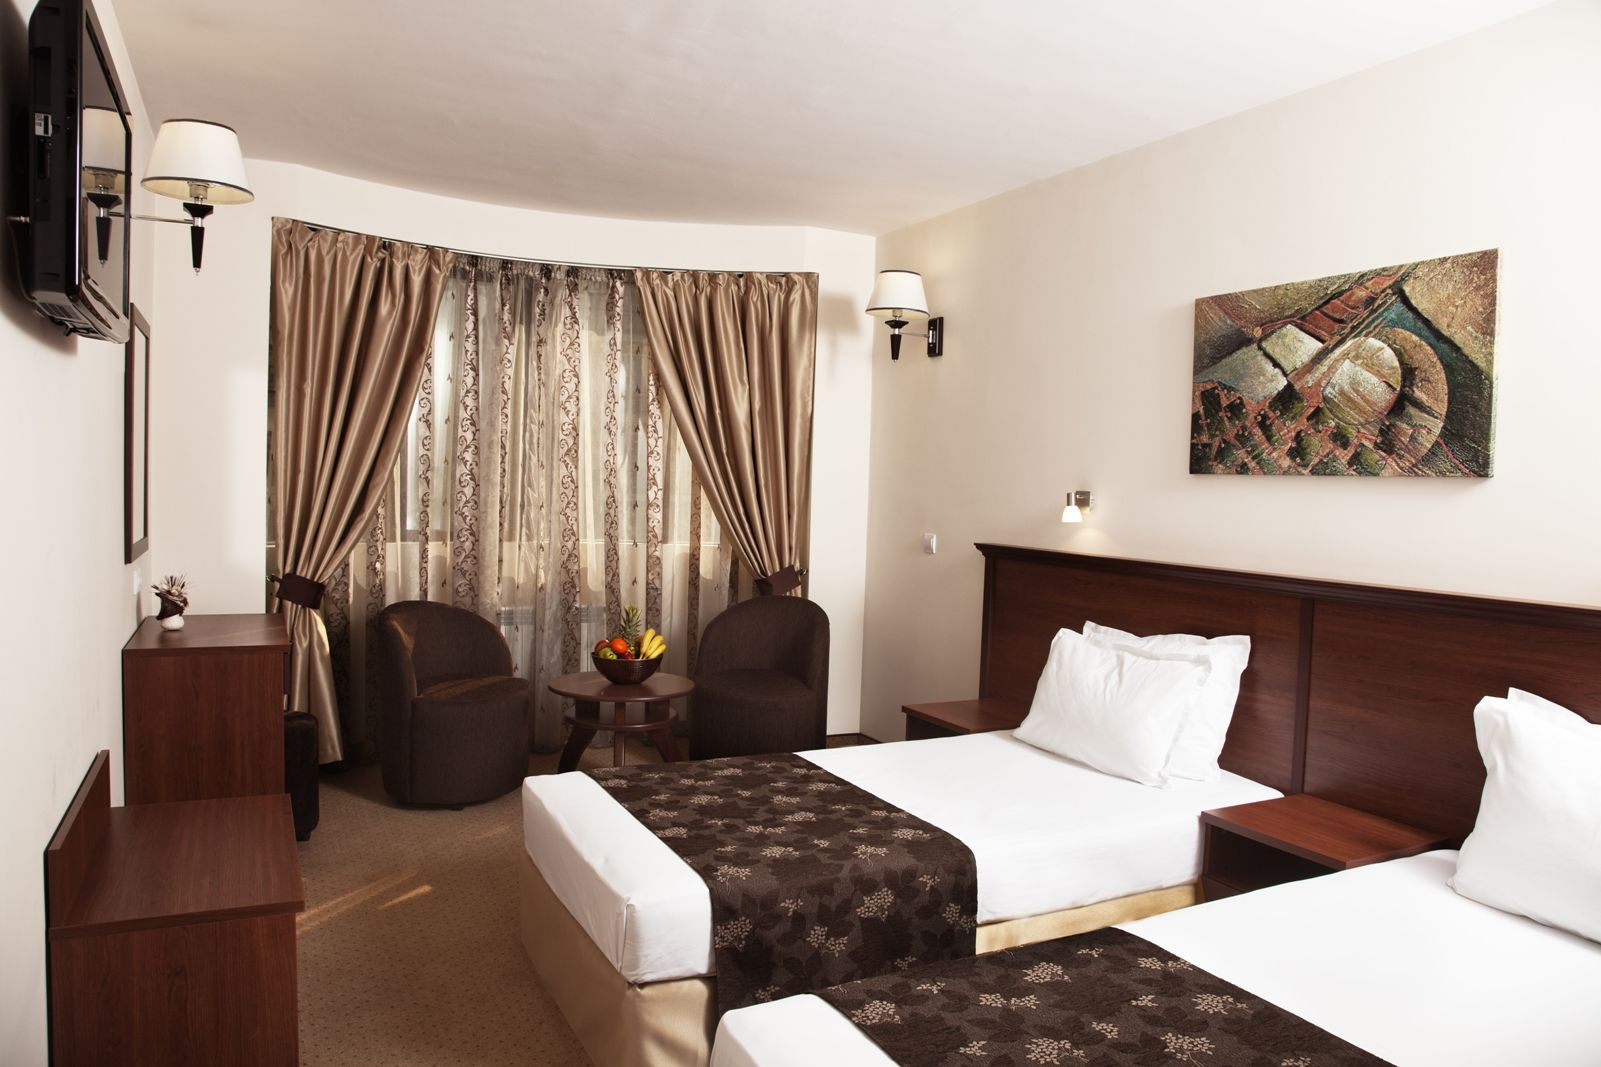 Comfort Suites in Favorit Hotel Sofia